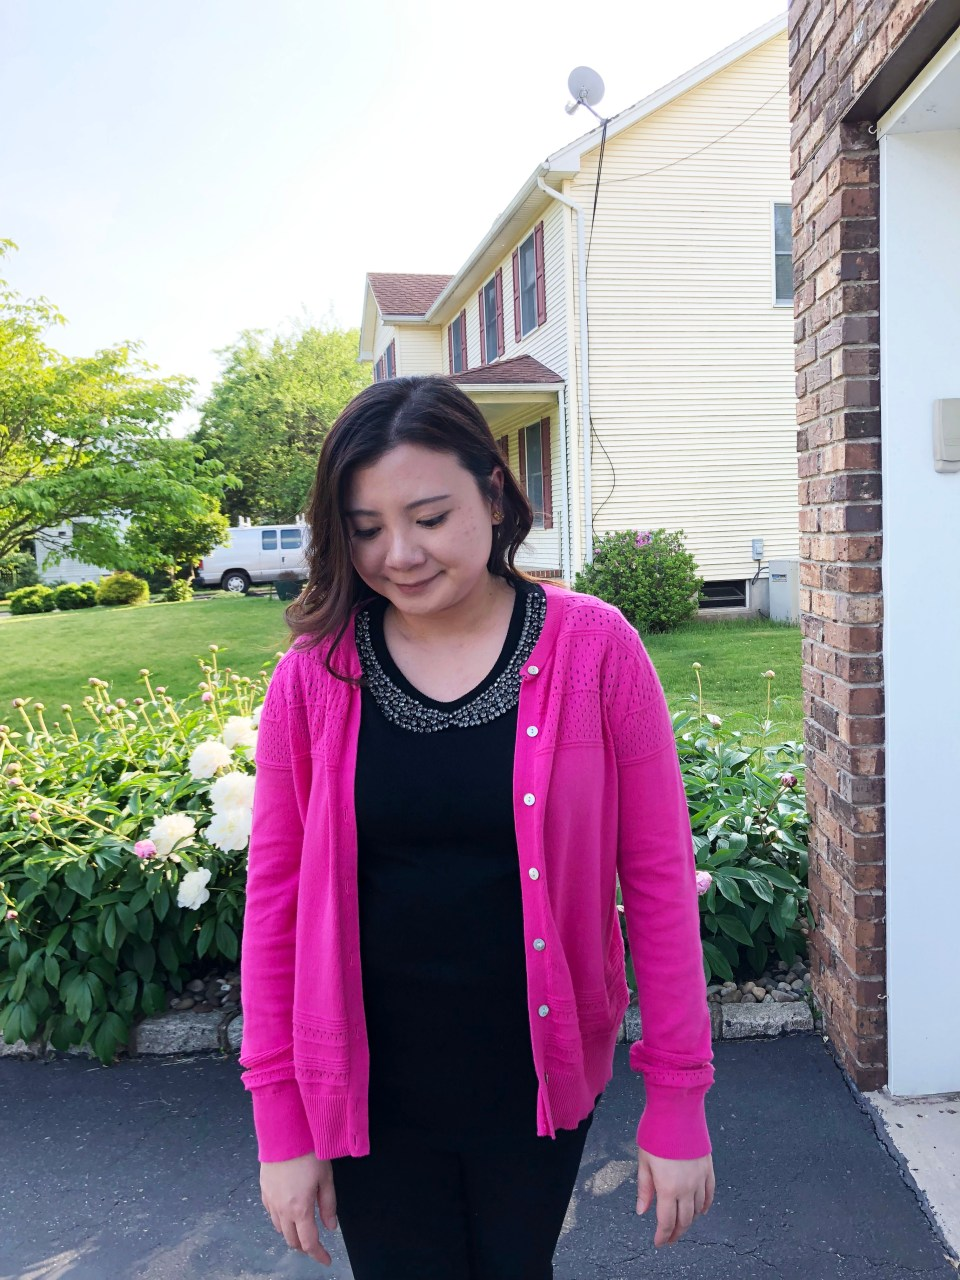 Jeweled Peter Pan Collar + Pink Cardigan 9